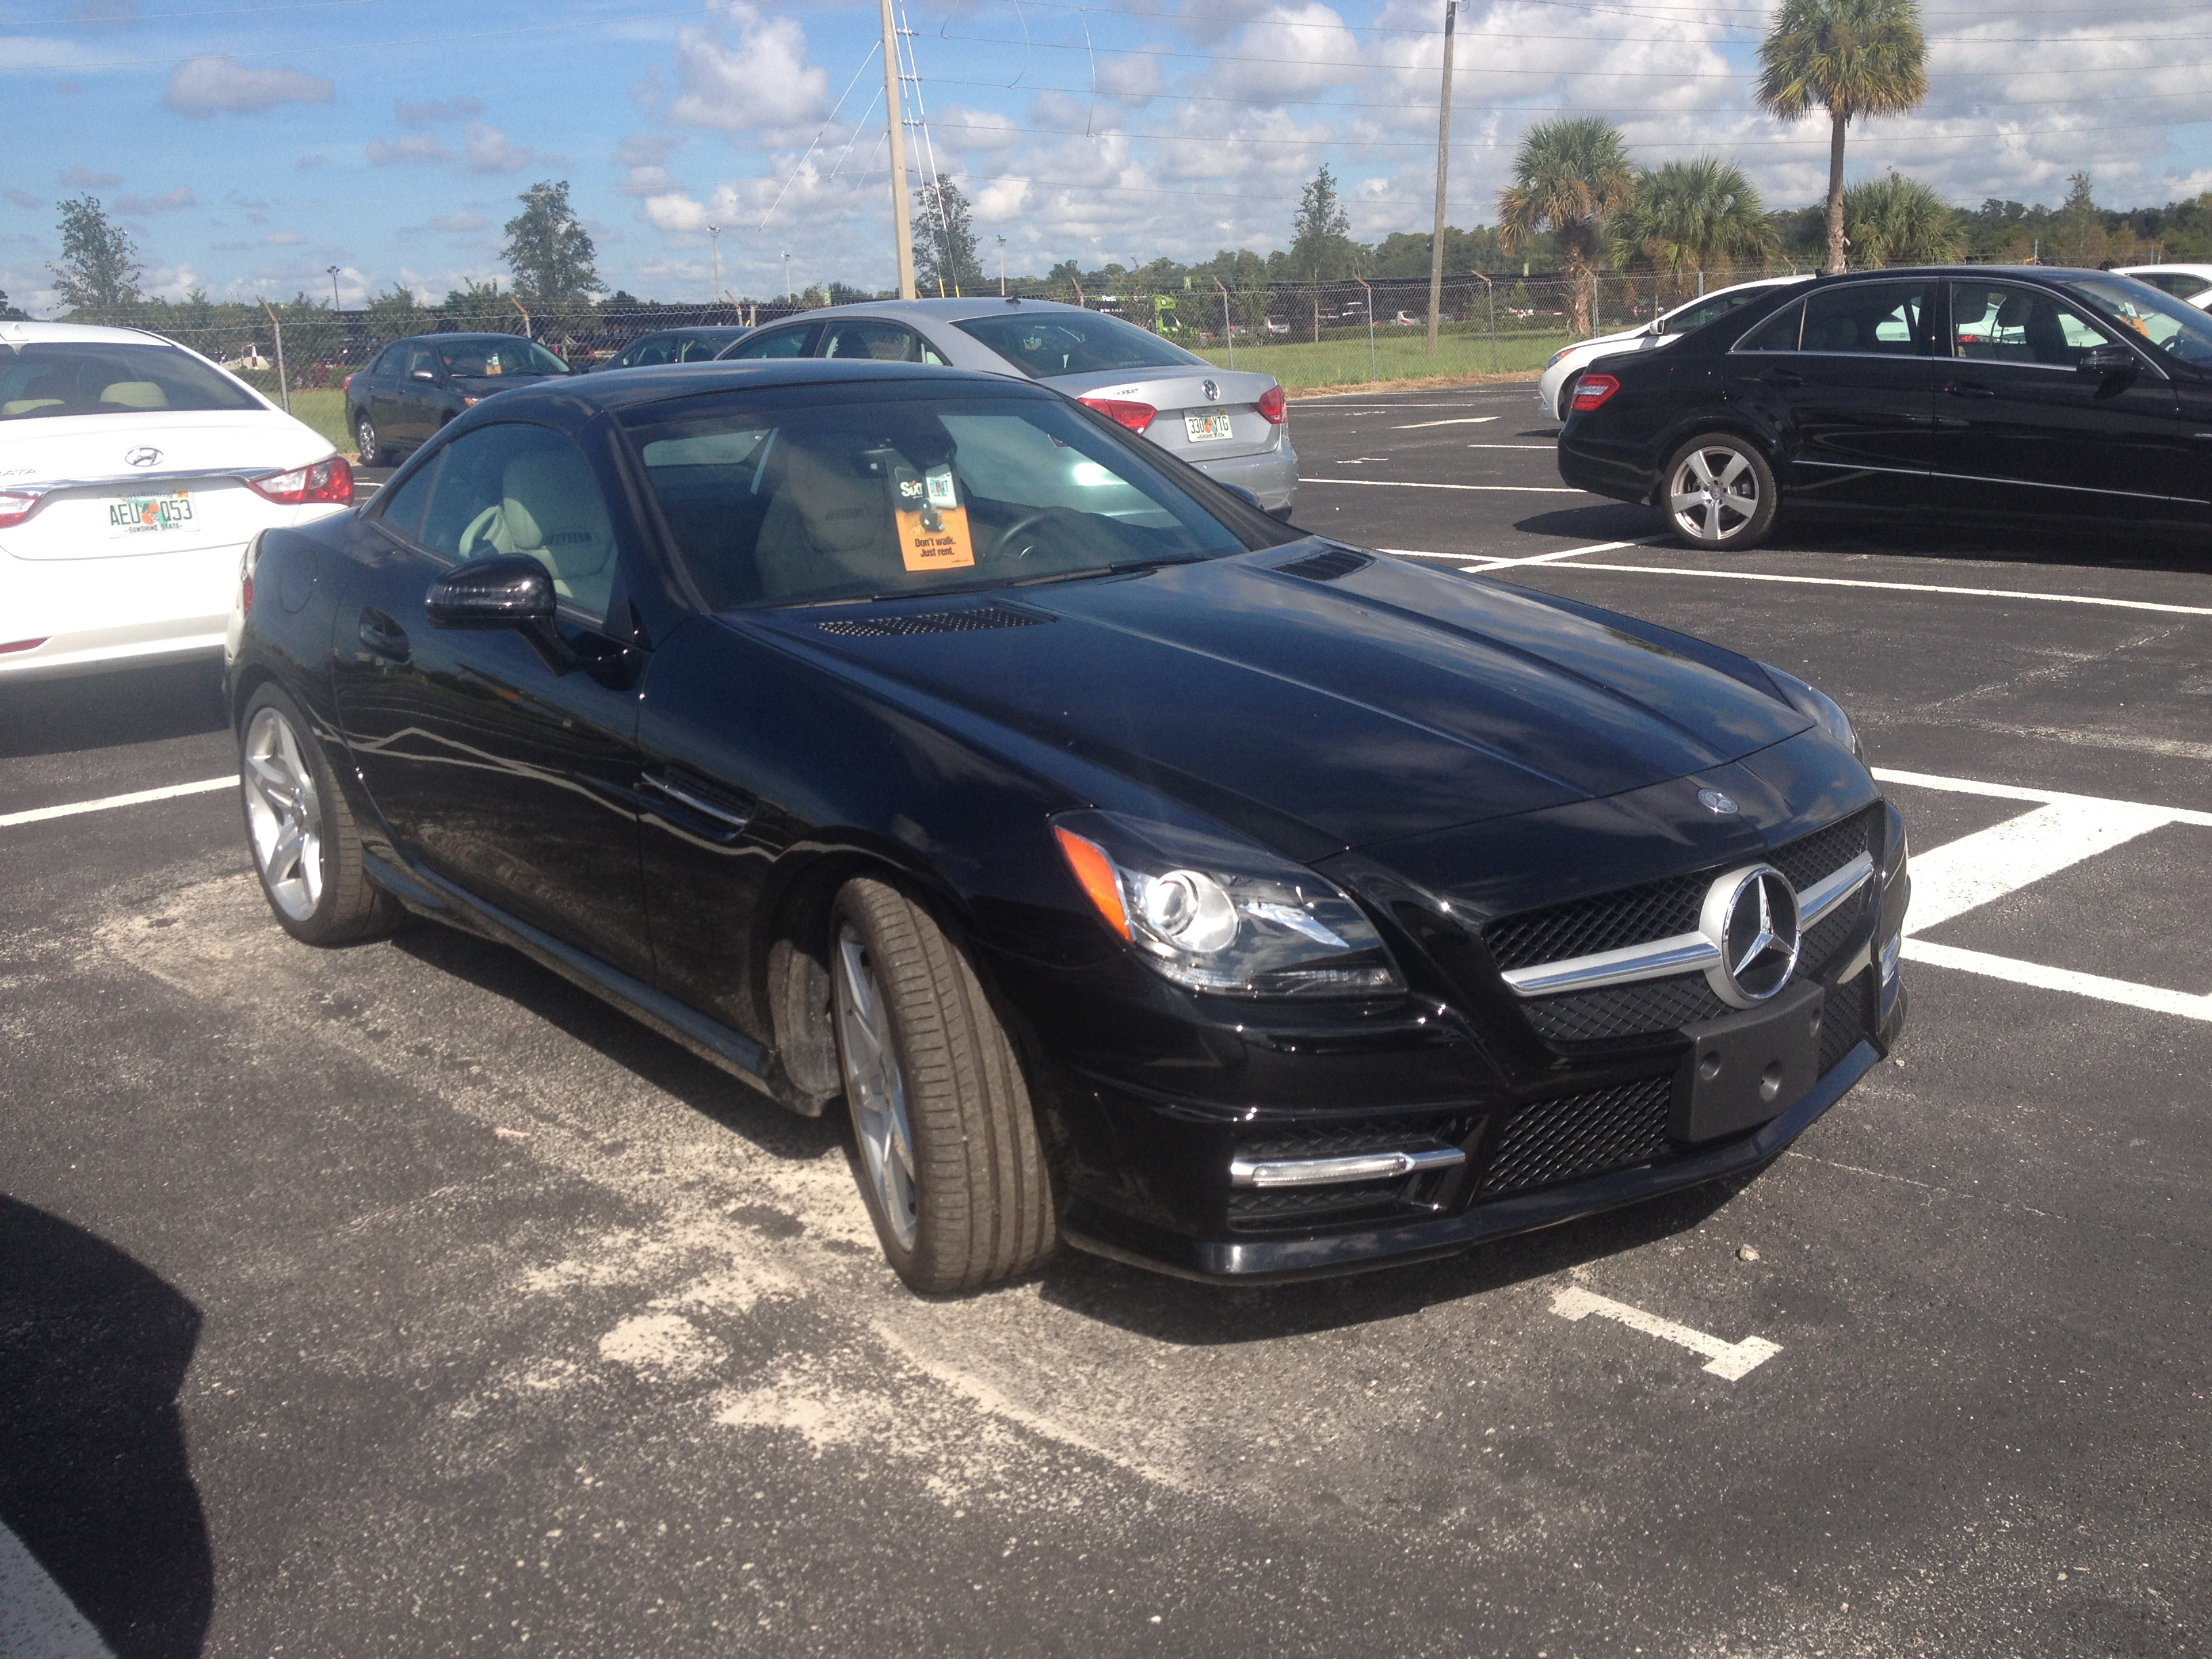 aaa benz mercedes amg luxury rental class c hire a car new rent sport